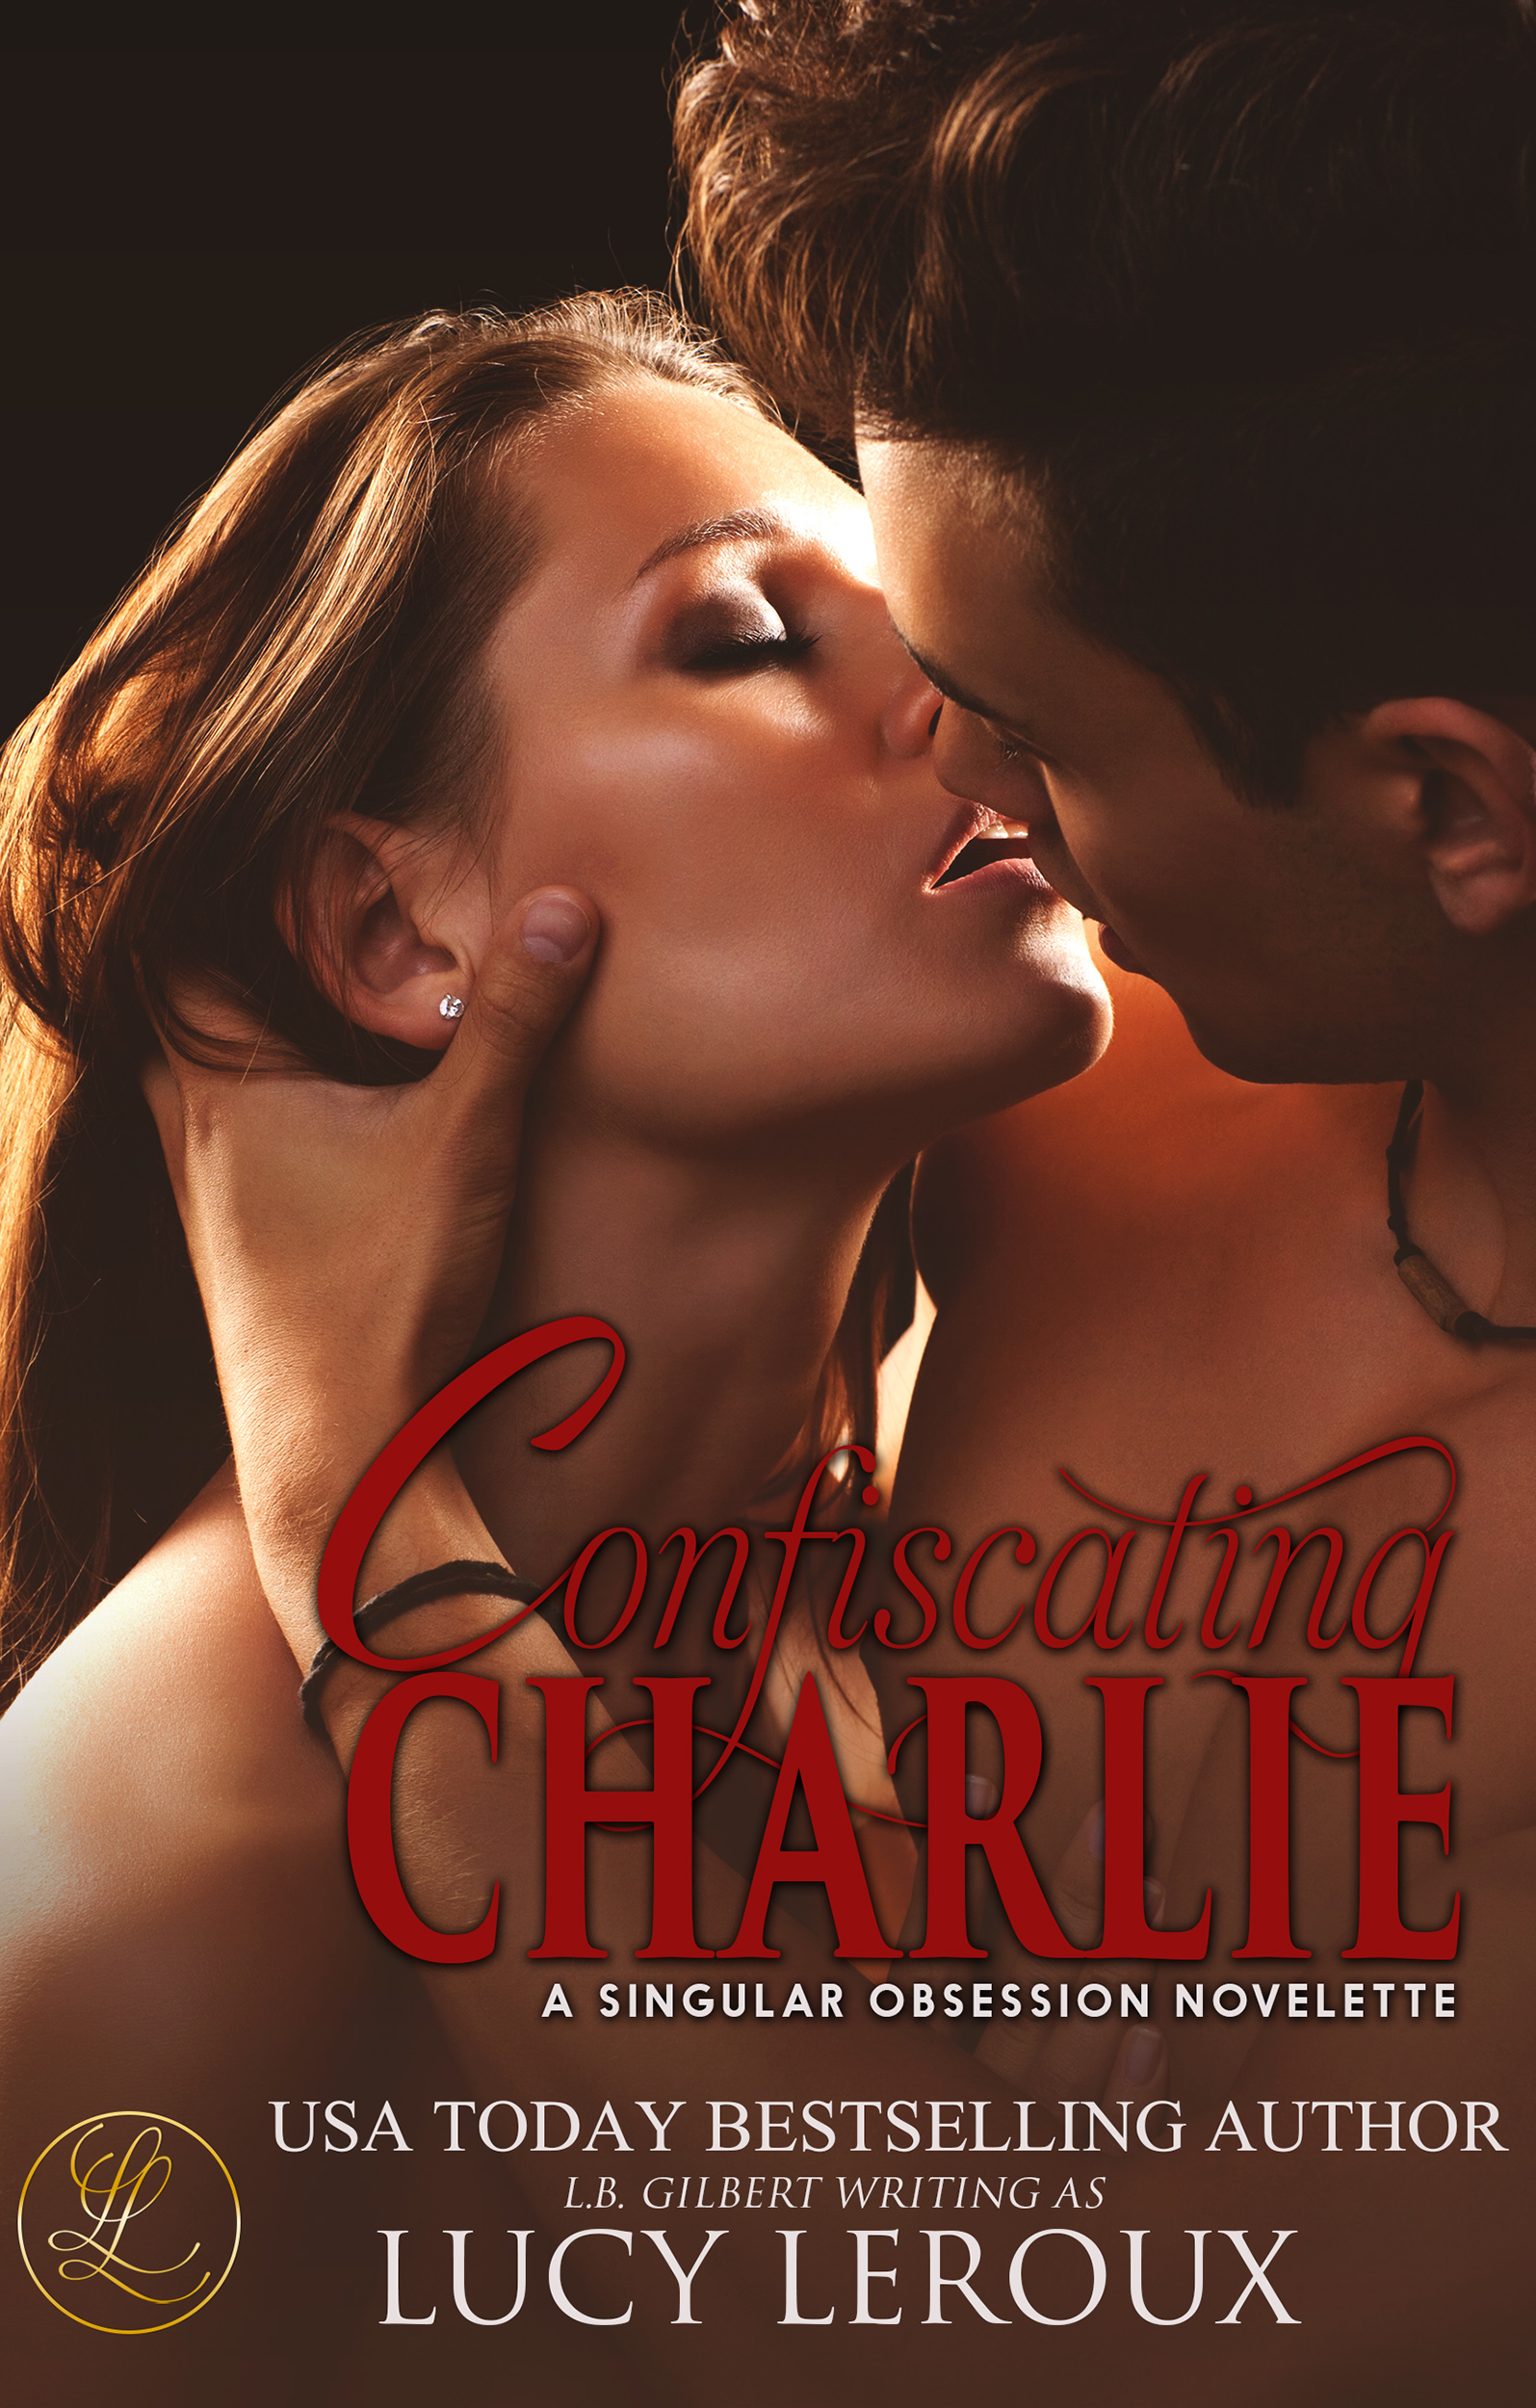 Confiscating Charlie: A Singular Obsession Novelette